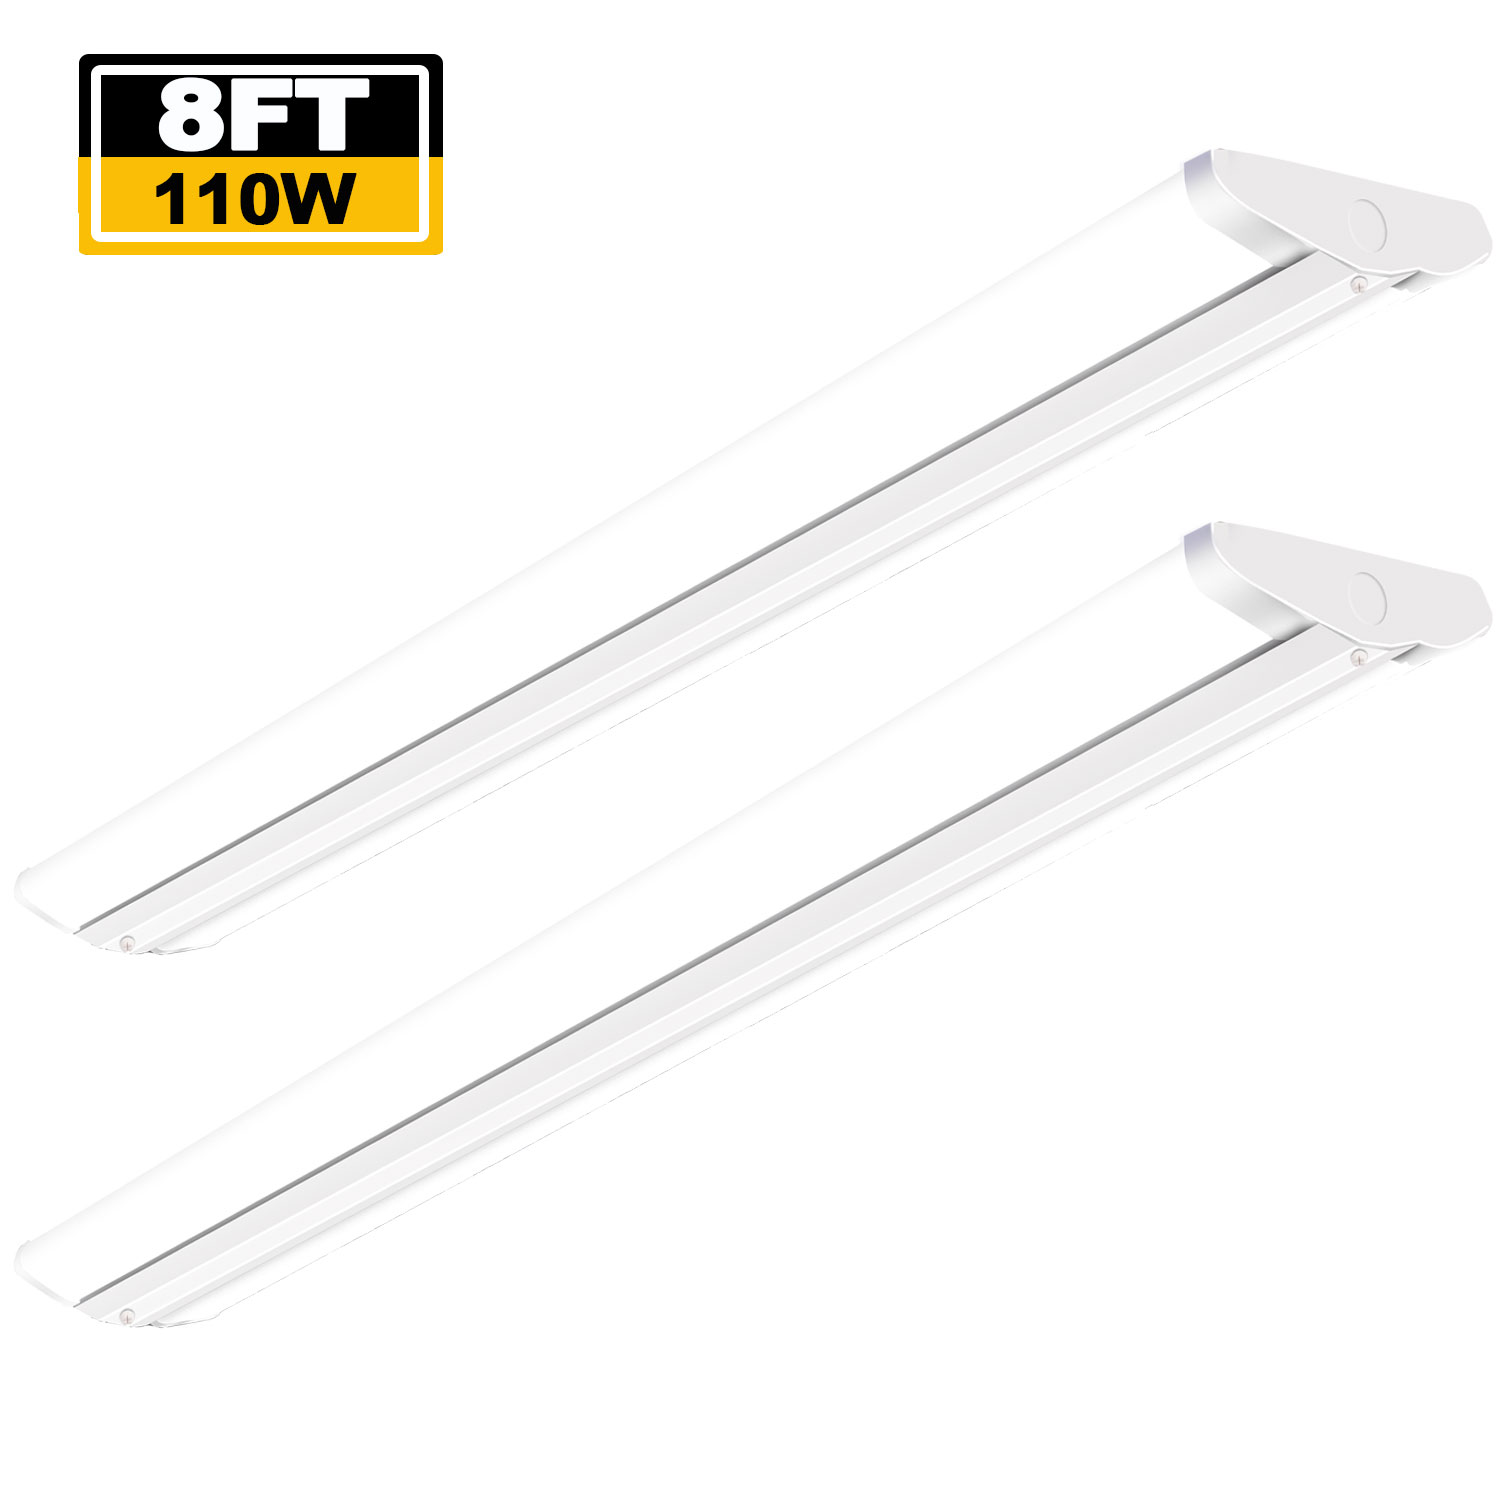 Antlux 110w 8ft Led Wraparound Ultra Slim Strip Lights